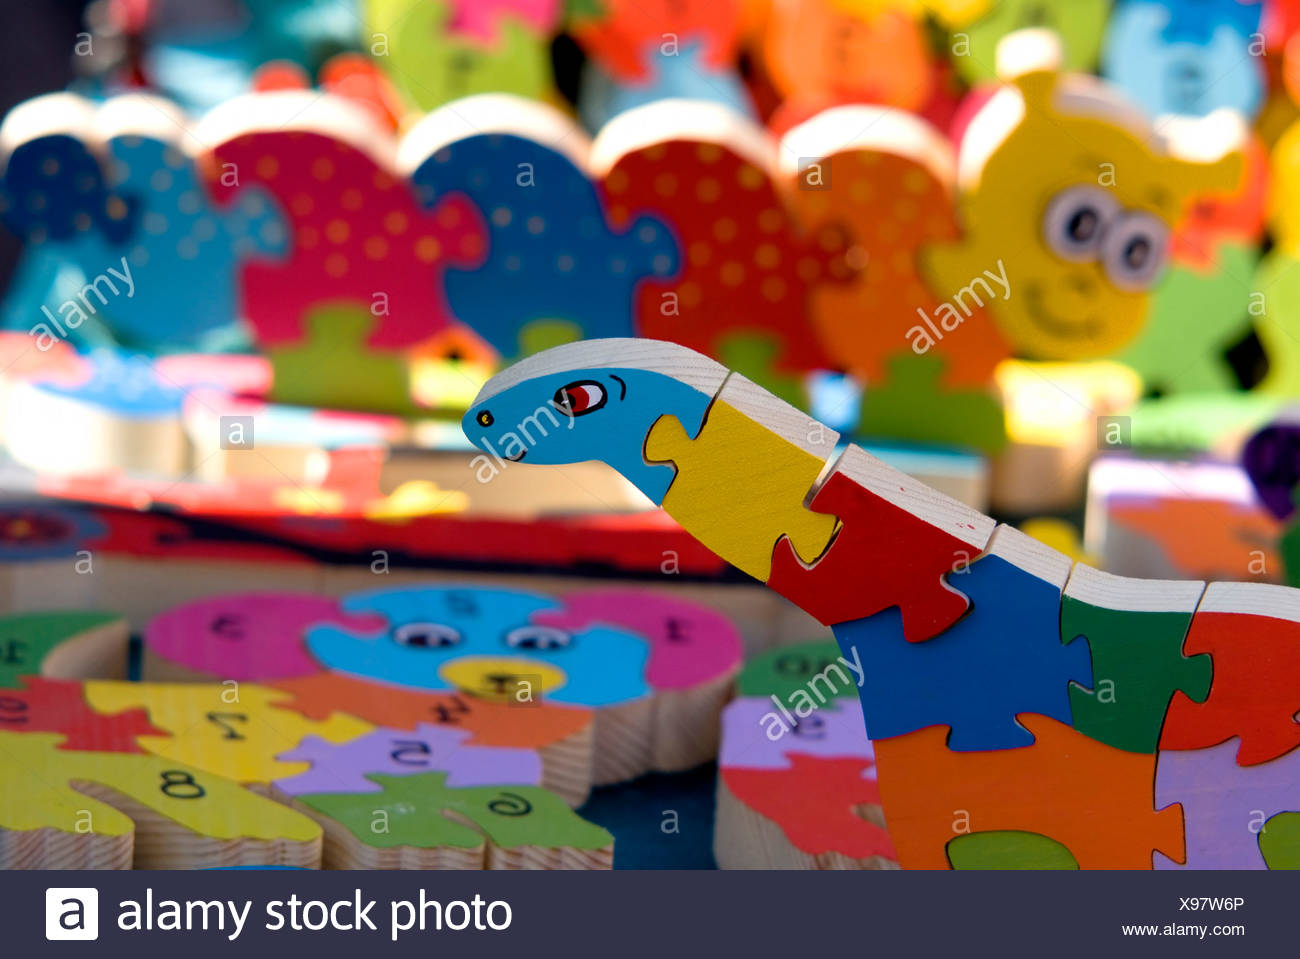 colourful Wooden 3 dimensional puzzles - Stock Image